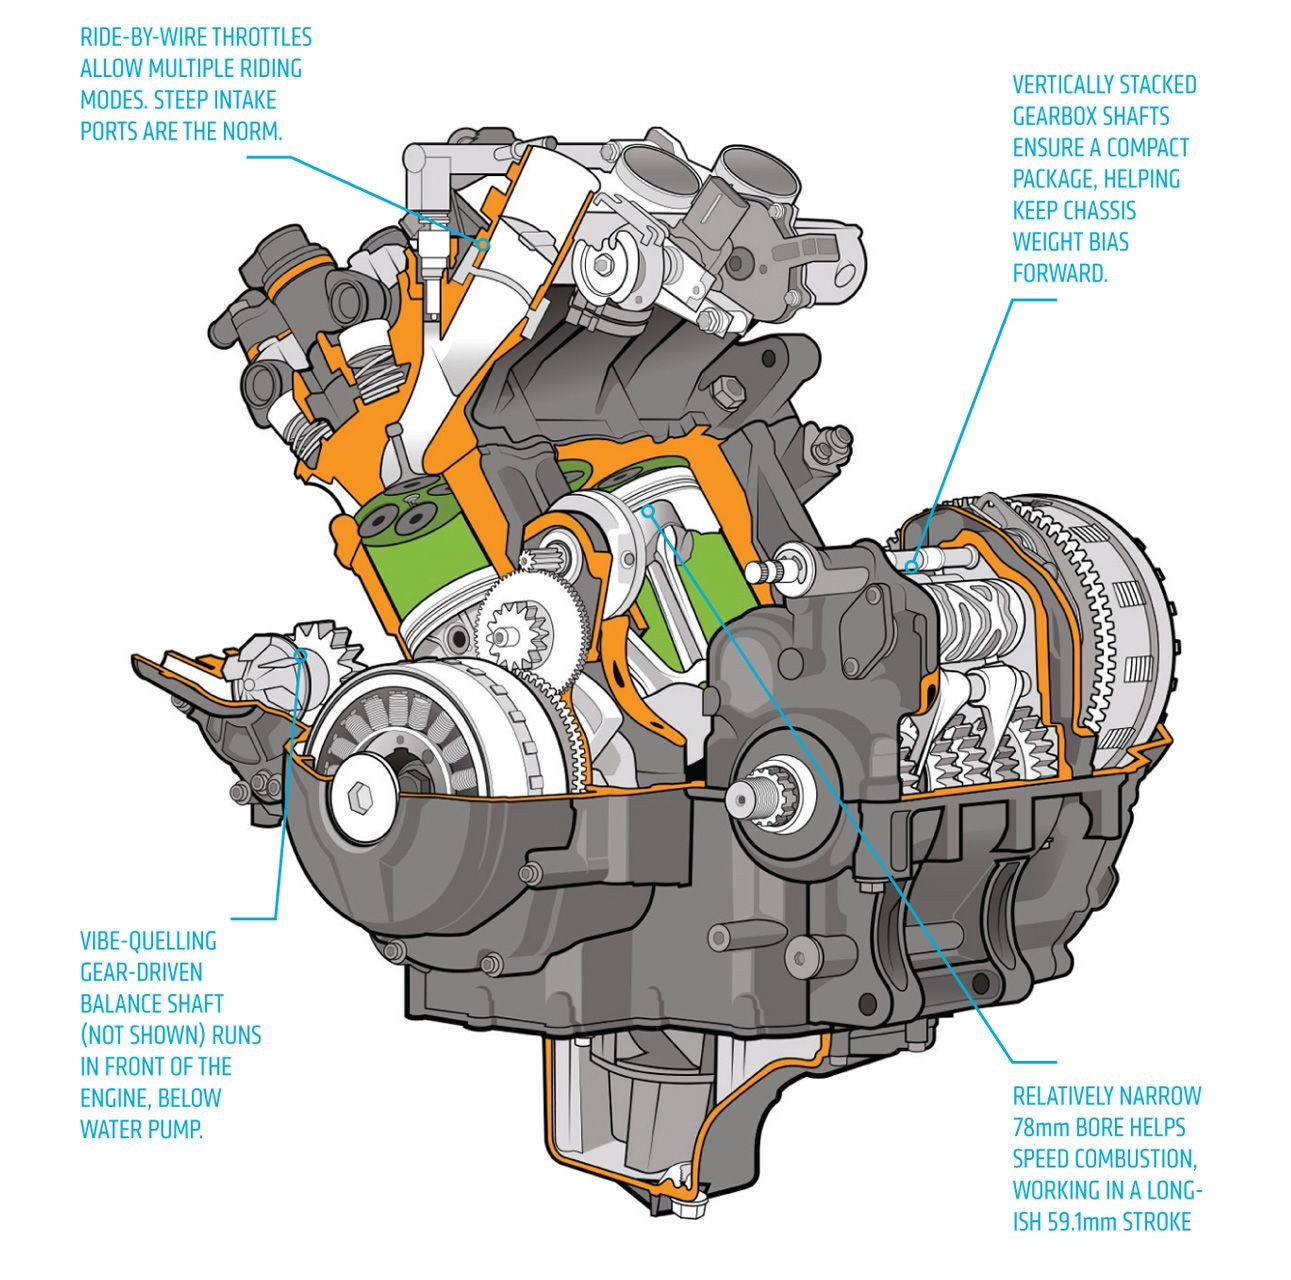 CAD engine diagram - 2014 Yamaha FZ-09 | Yamaha FZ/FJ 09 | Pinterest ...